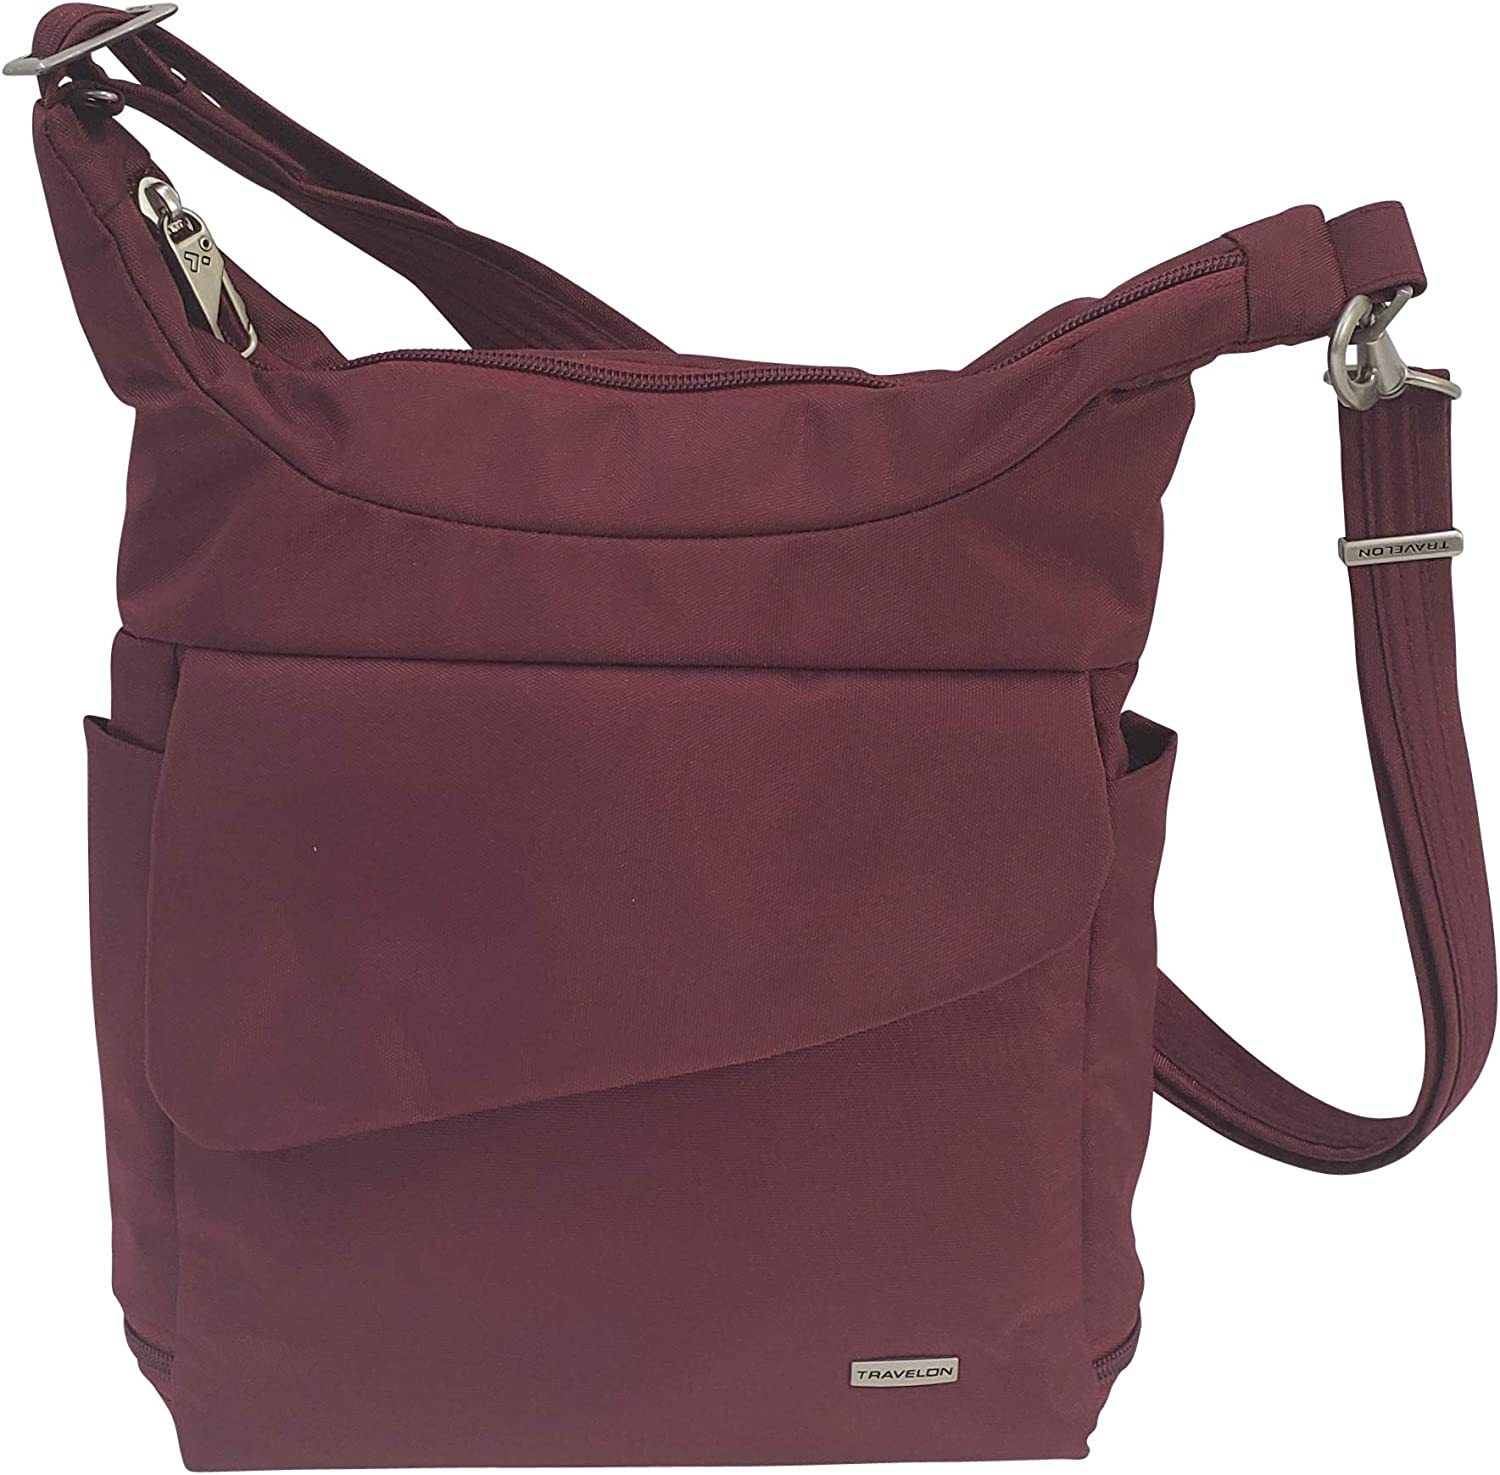 Travelon Anti-Theft Messenger Bag (Wine/Coral Lining)